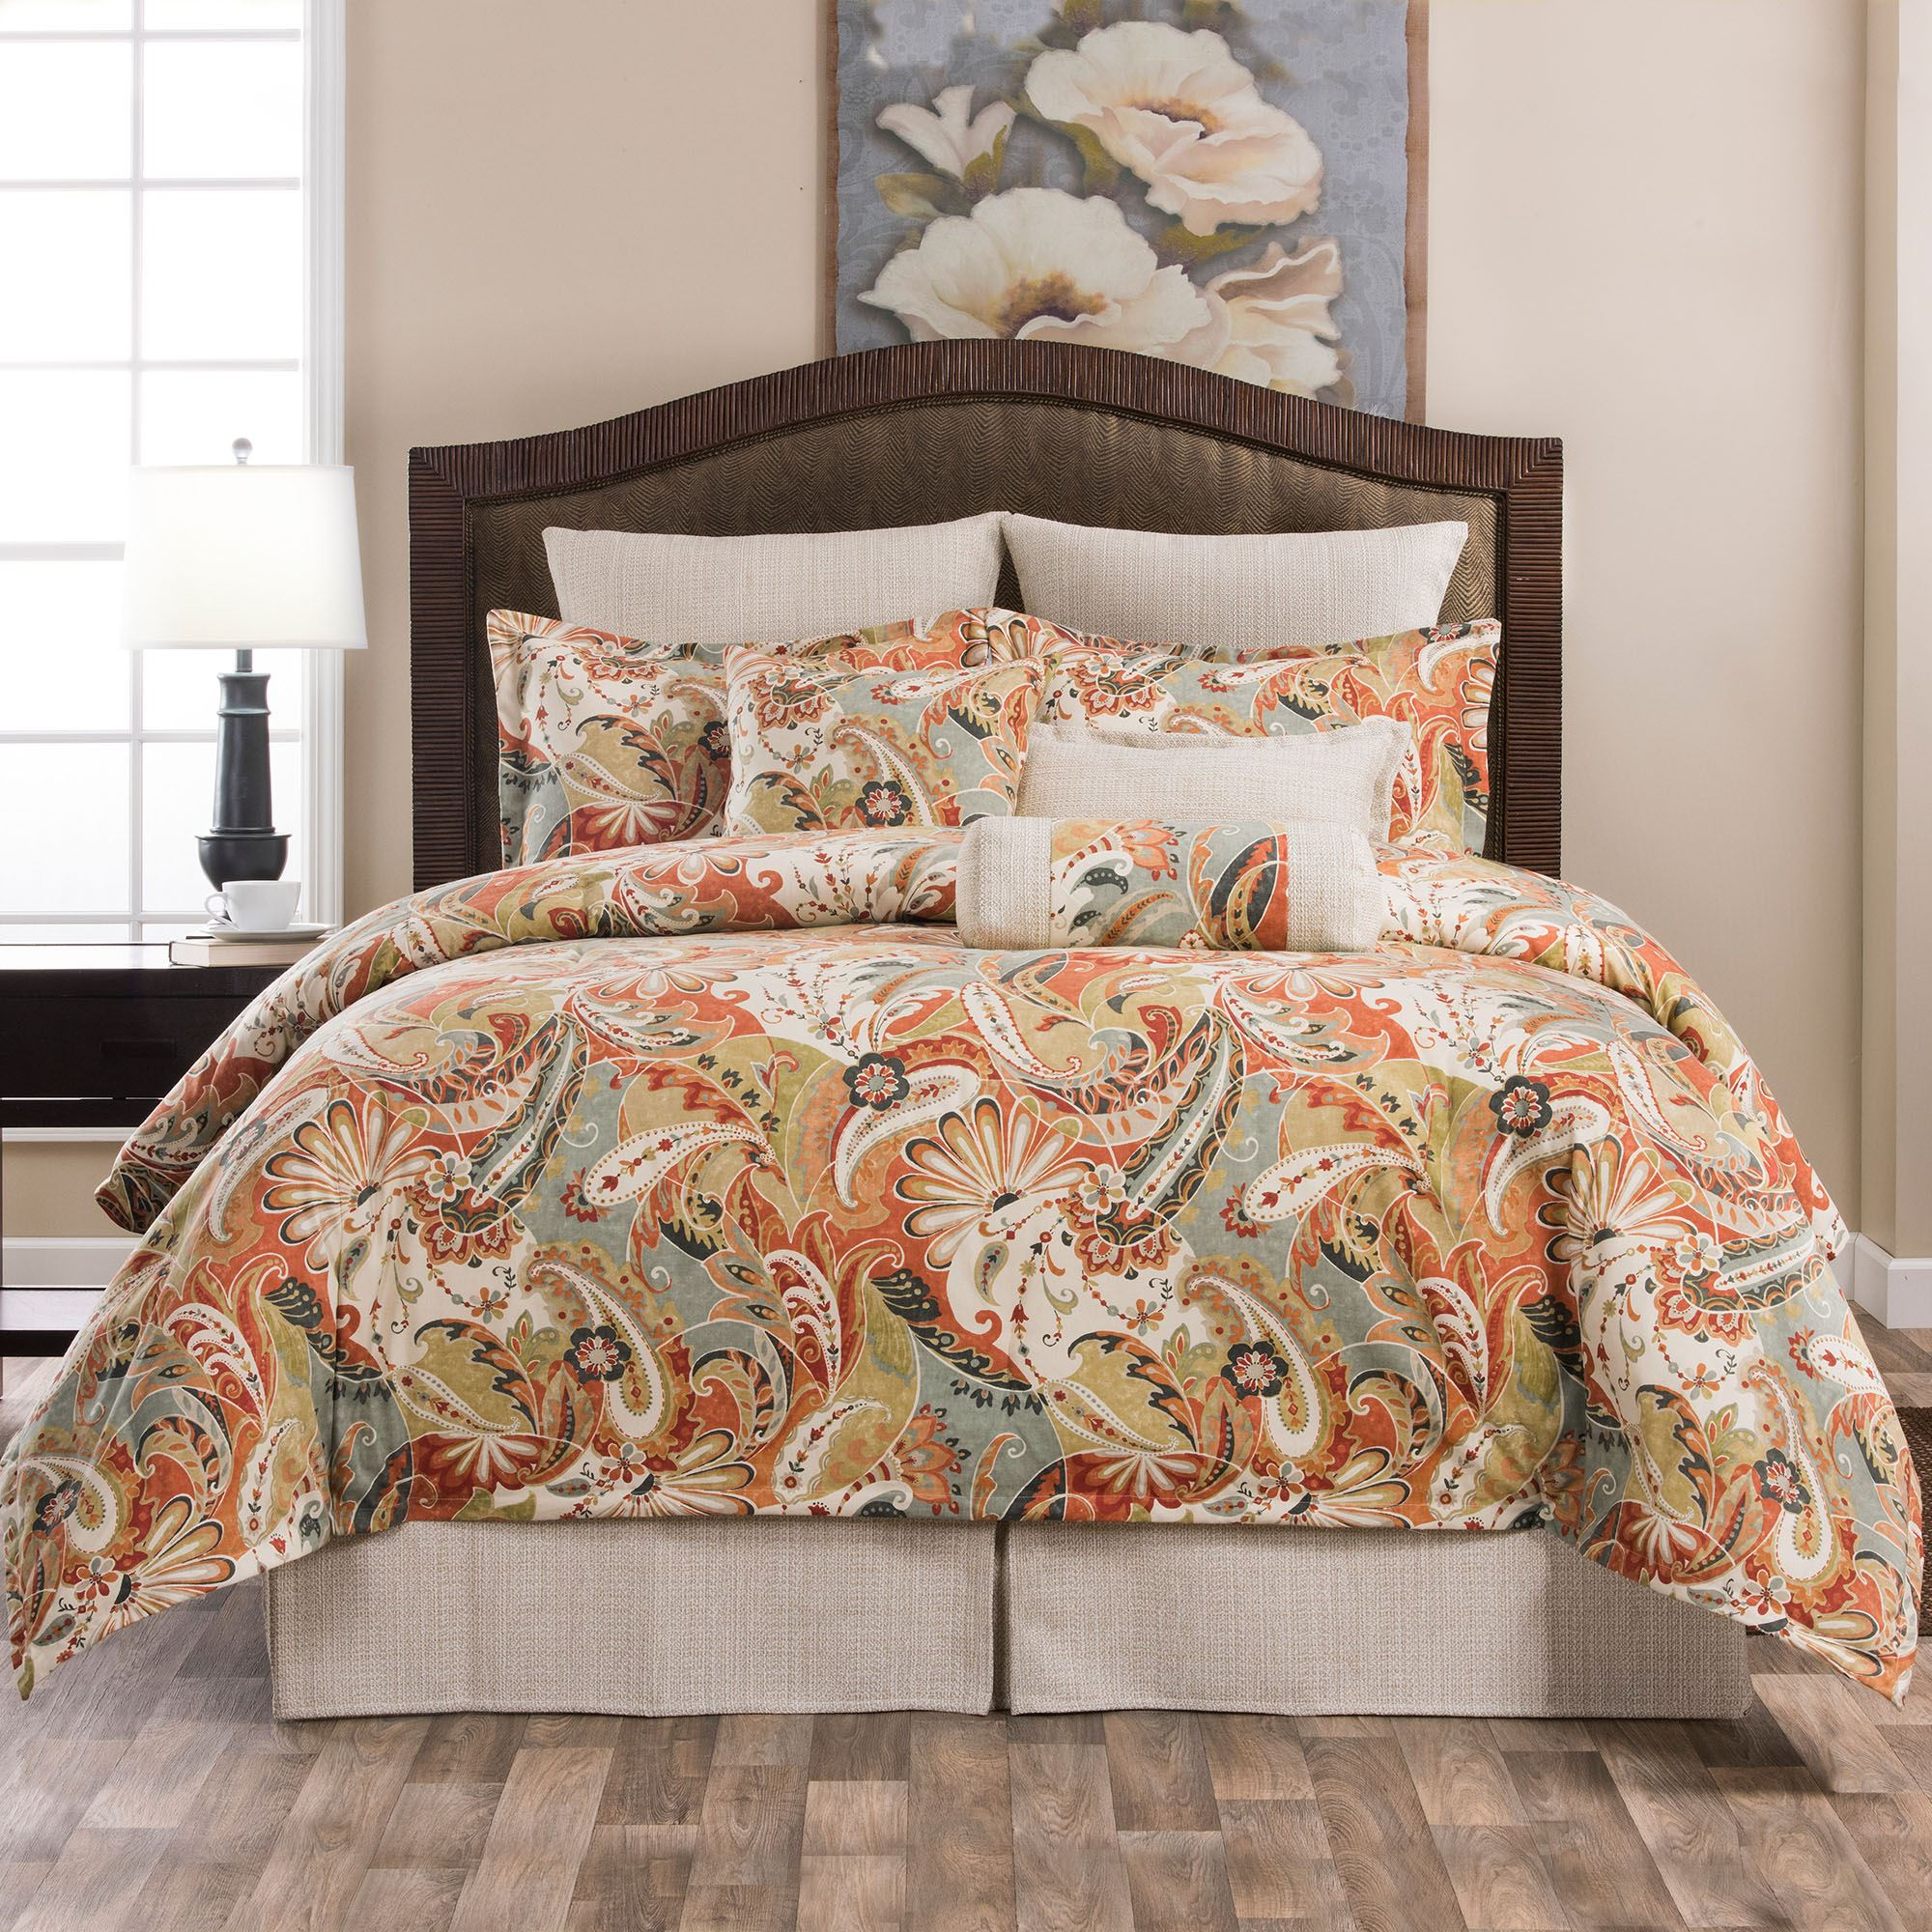 paisley ah mission duvet comforter the quilt cover candace joss inspiring tommy main set and reviews charm bedding home laura by ashley hilfiger